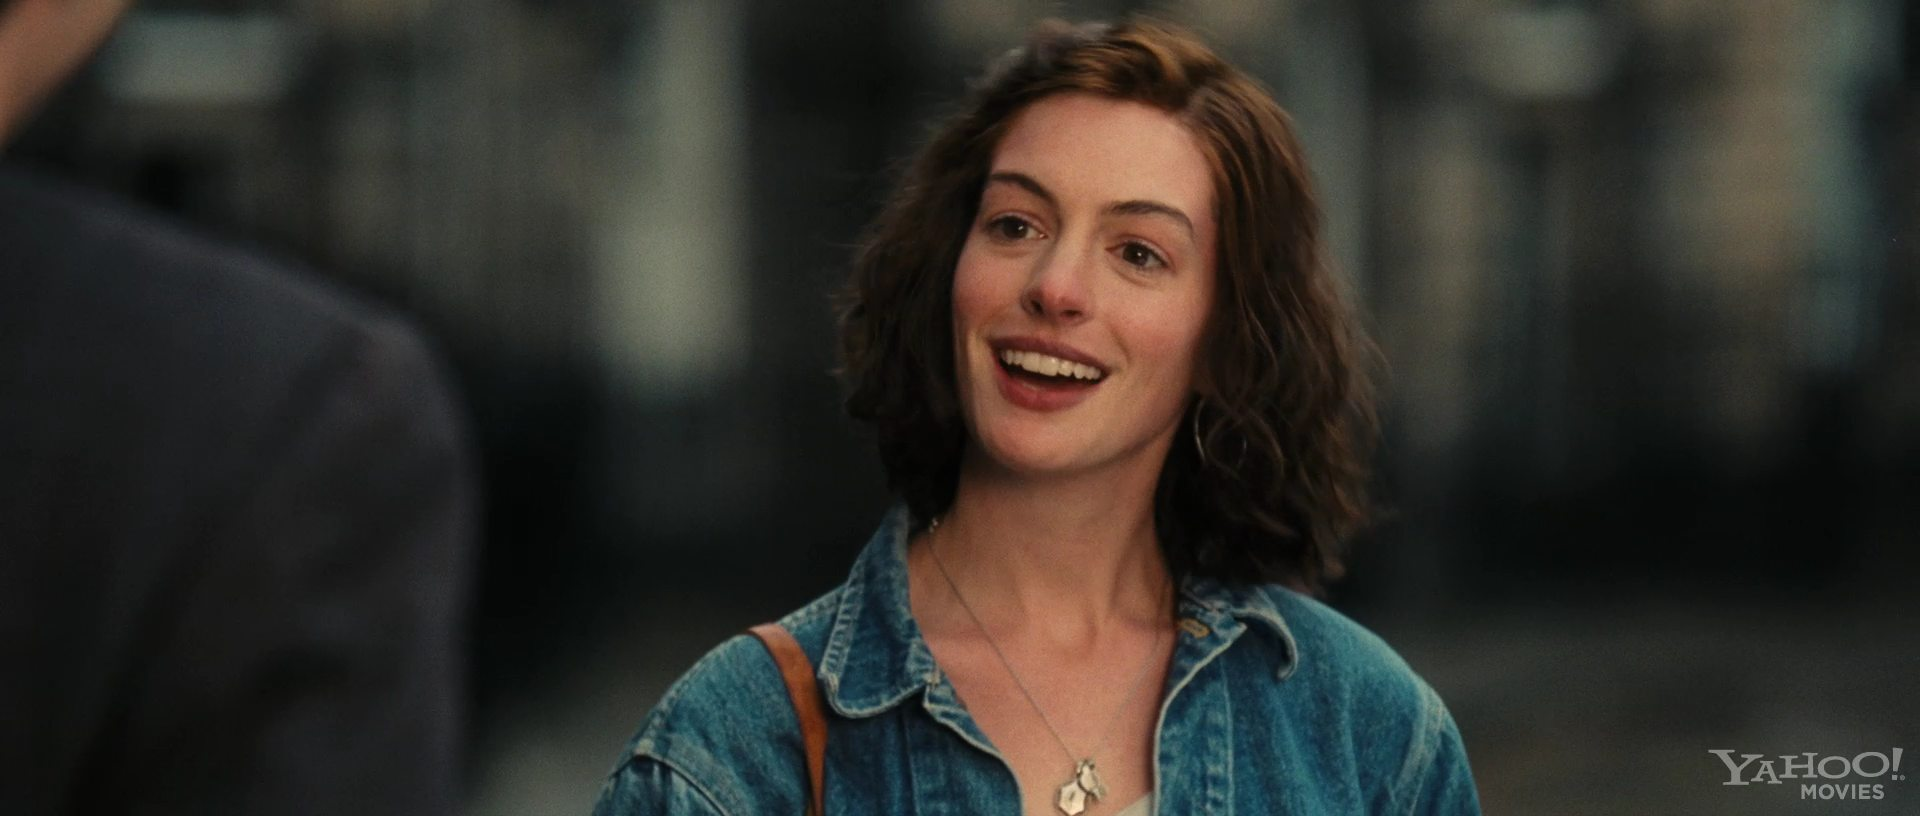 Anne Hathaway as Emma Morley in One Day who bare the love between her and her bestfriend for over 2 decade